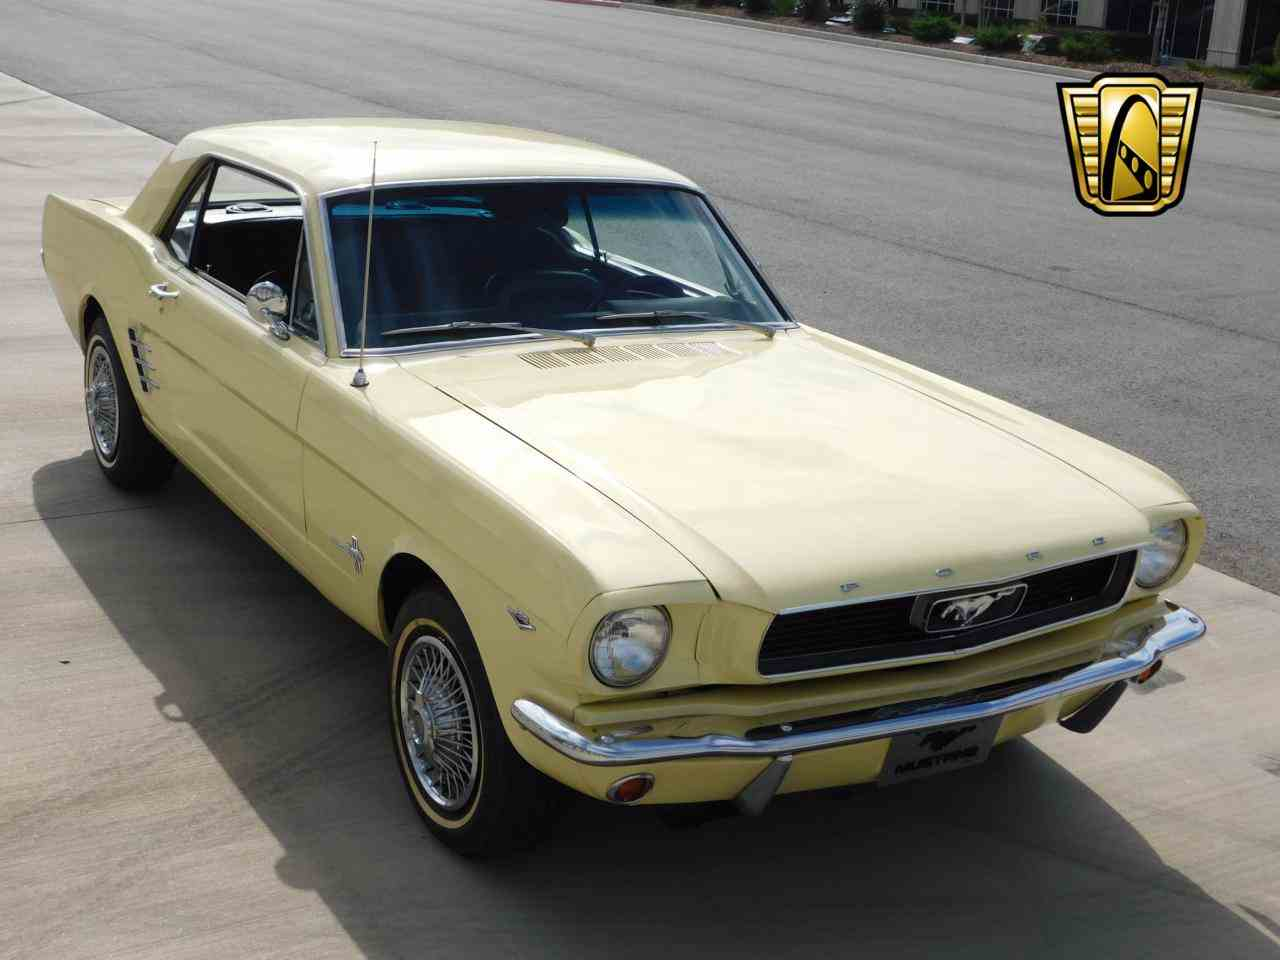 Large Picture of Classic '66 Mustang - $19,995.00 Offered by Gateway Classic Cars - Atlanta - MBRW